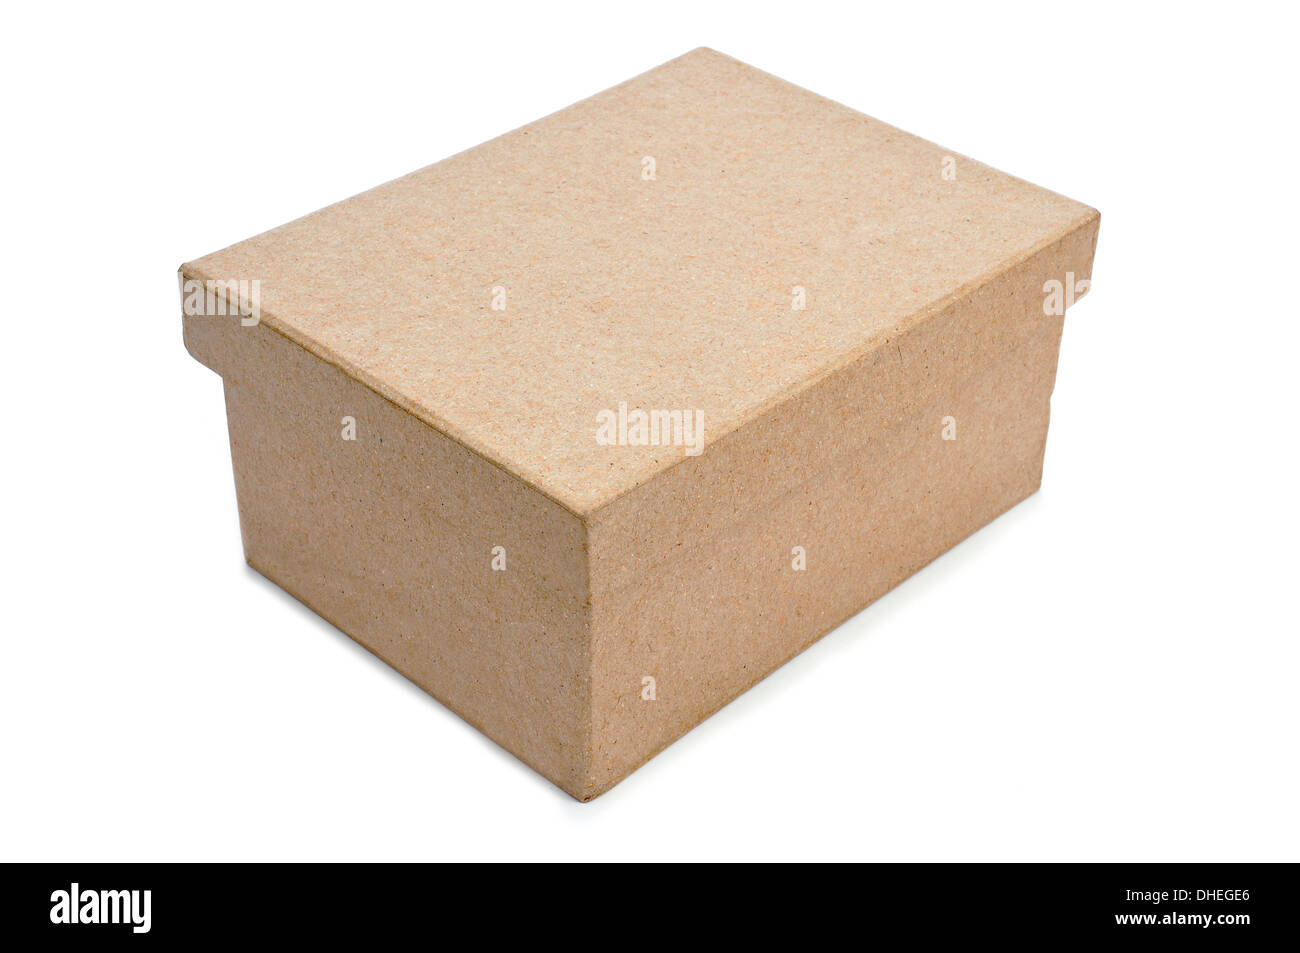 a cardboard box with lid on a white background - Stock Image